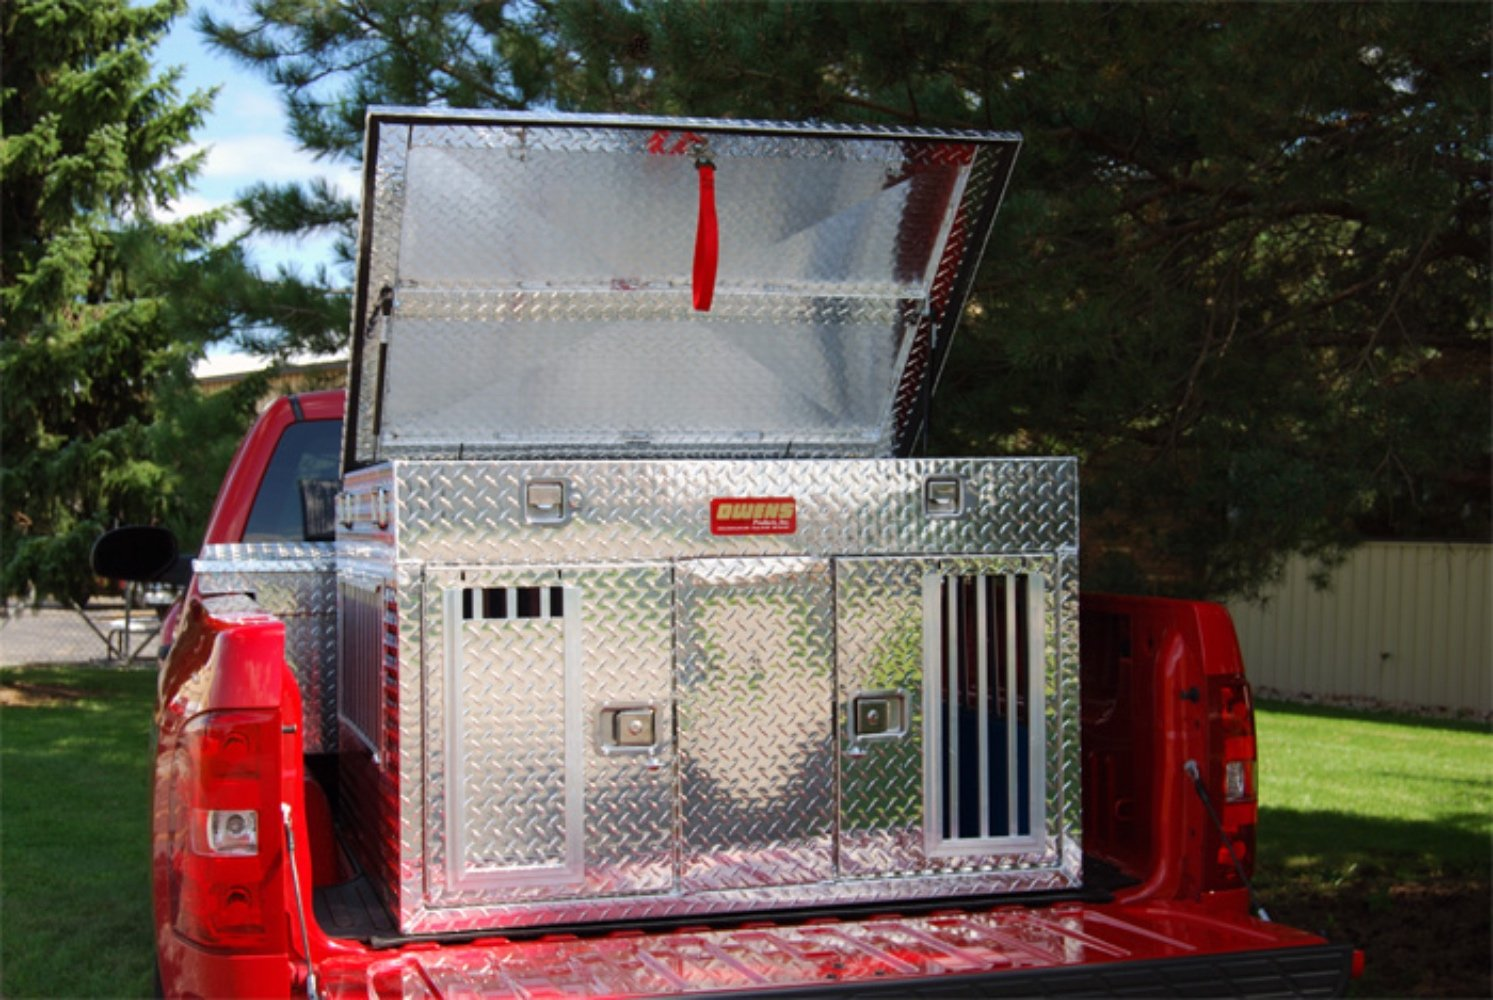 Owens Products, Model 55044, Dog Box for Hunting and Travel ~ Hunter Series Double Compartment Diamond Plate Aluminum Dog Crate, with Top Storage - TALL